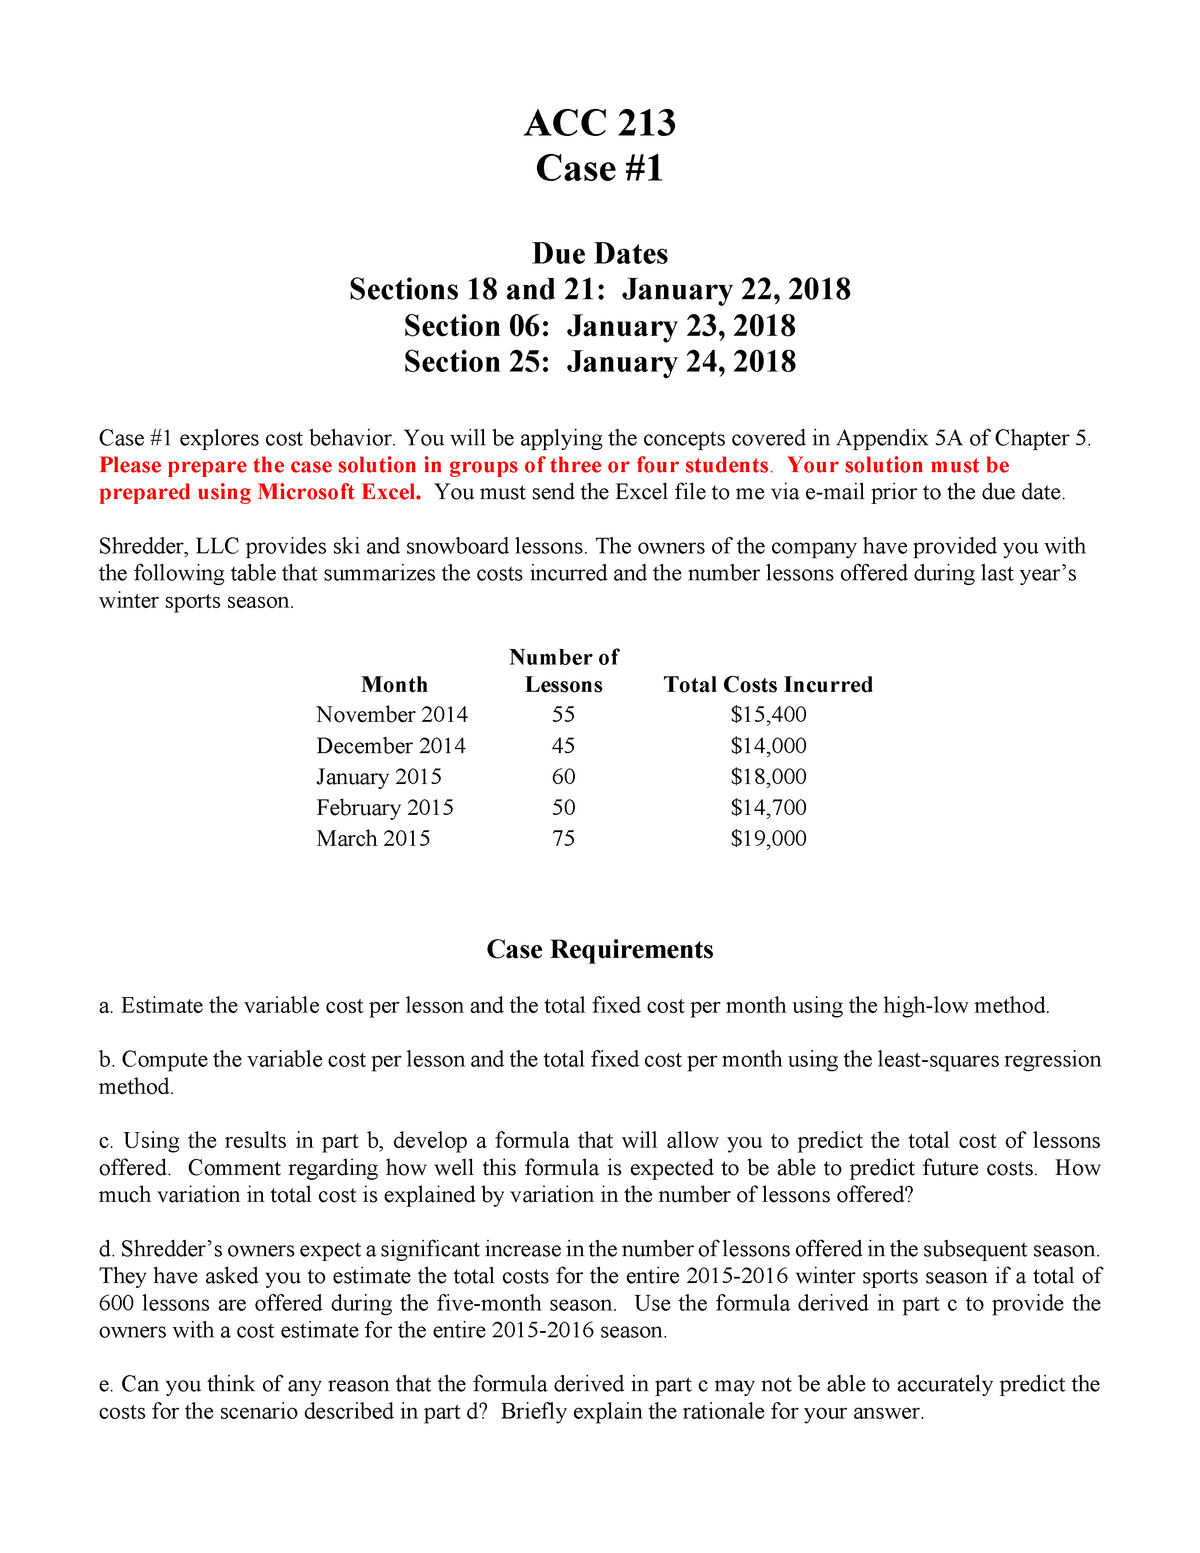 Case 1 instructions - case study project - ACC 213: Principles Of